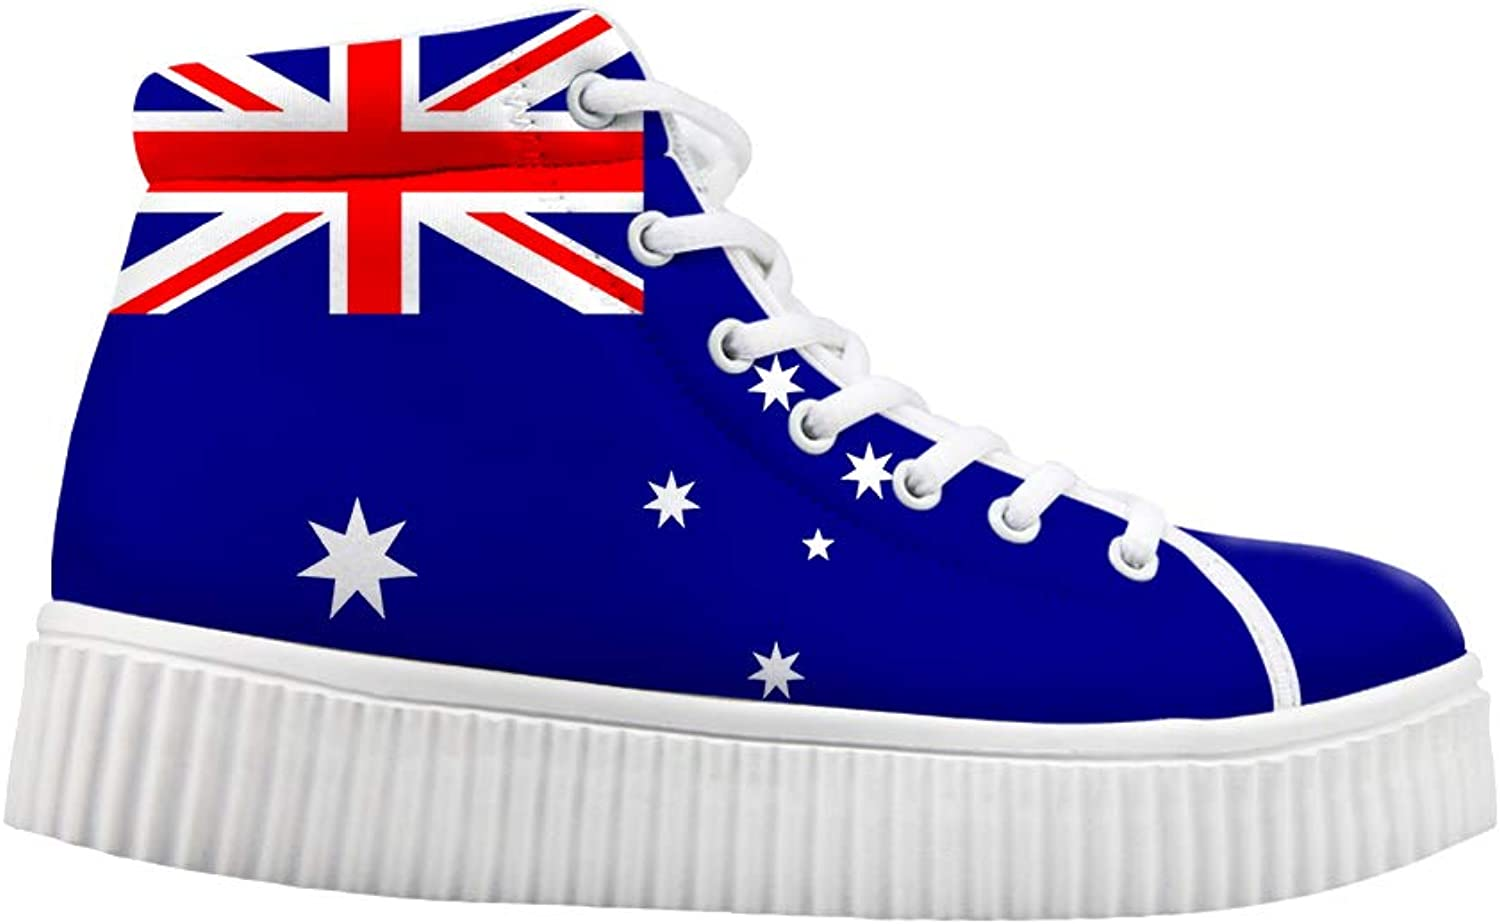 Owaheson Platform Lace up Sneaker Casual Chunky Walking shoes High Top Women Australia Flag